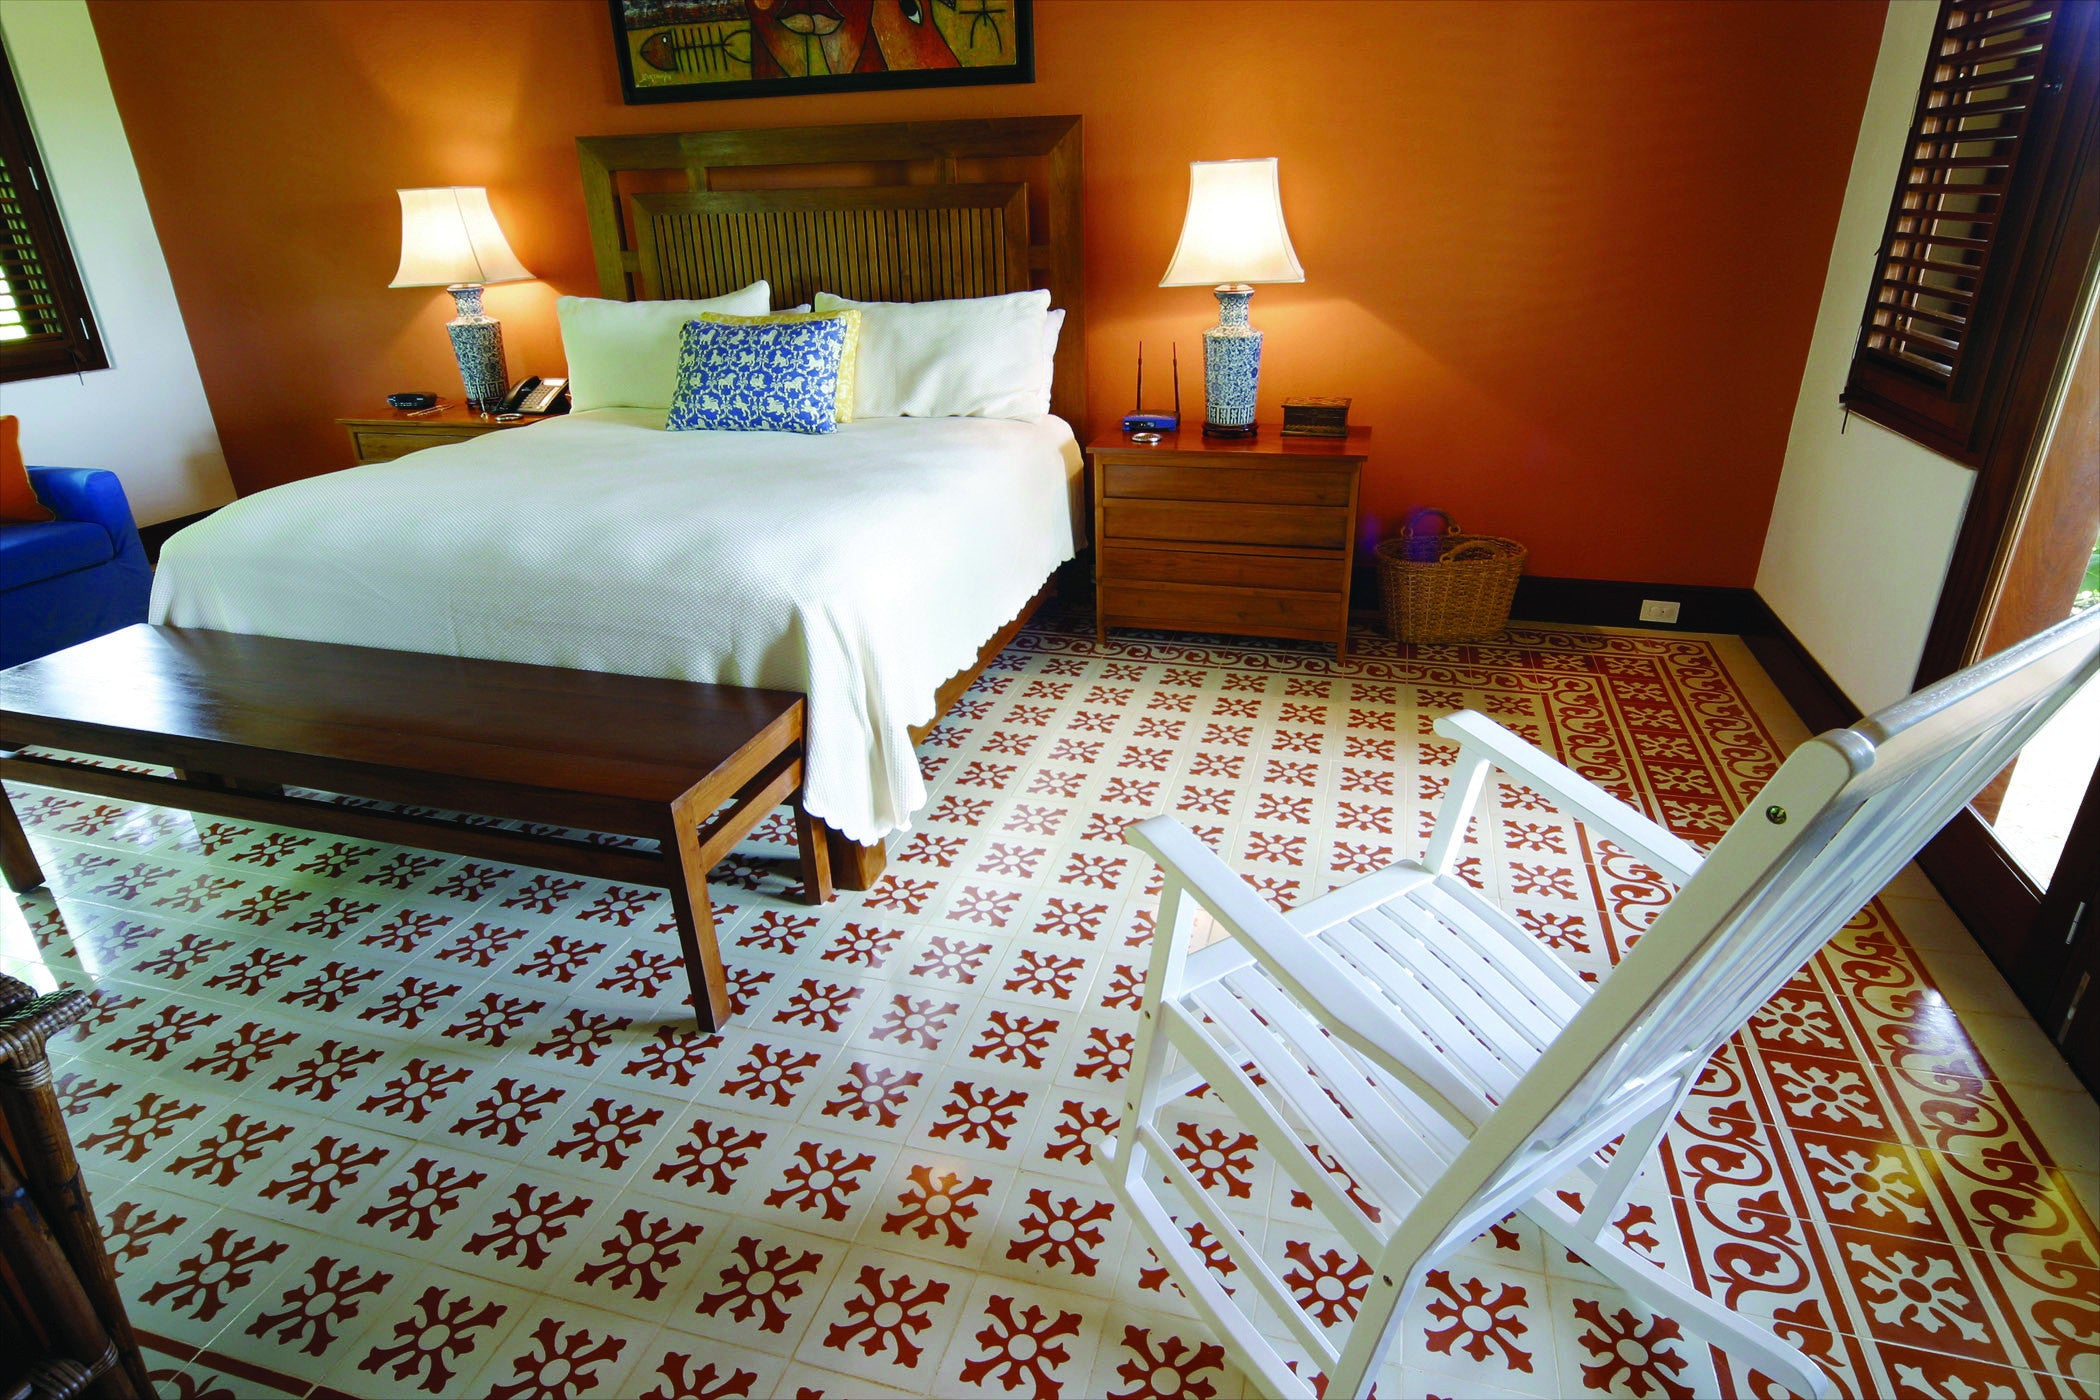 Encaustic cement tile flooring can be customized and is very durable